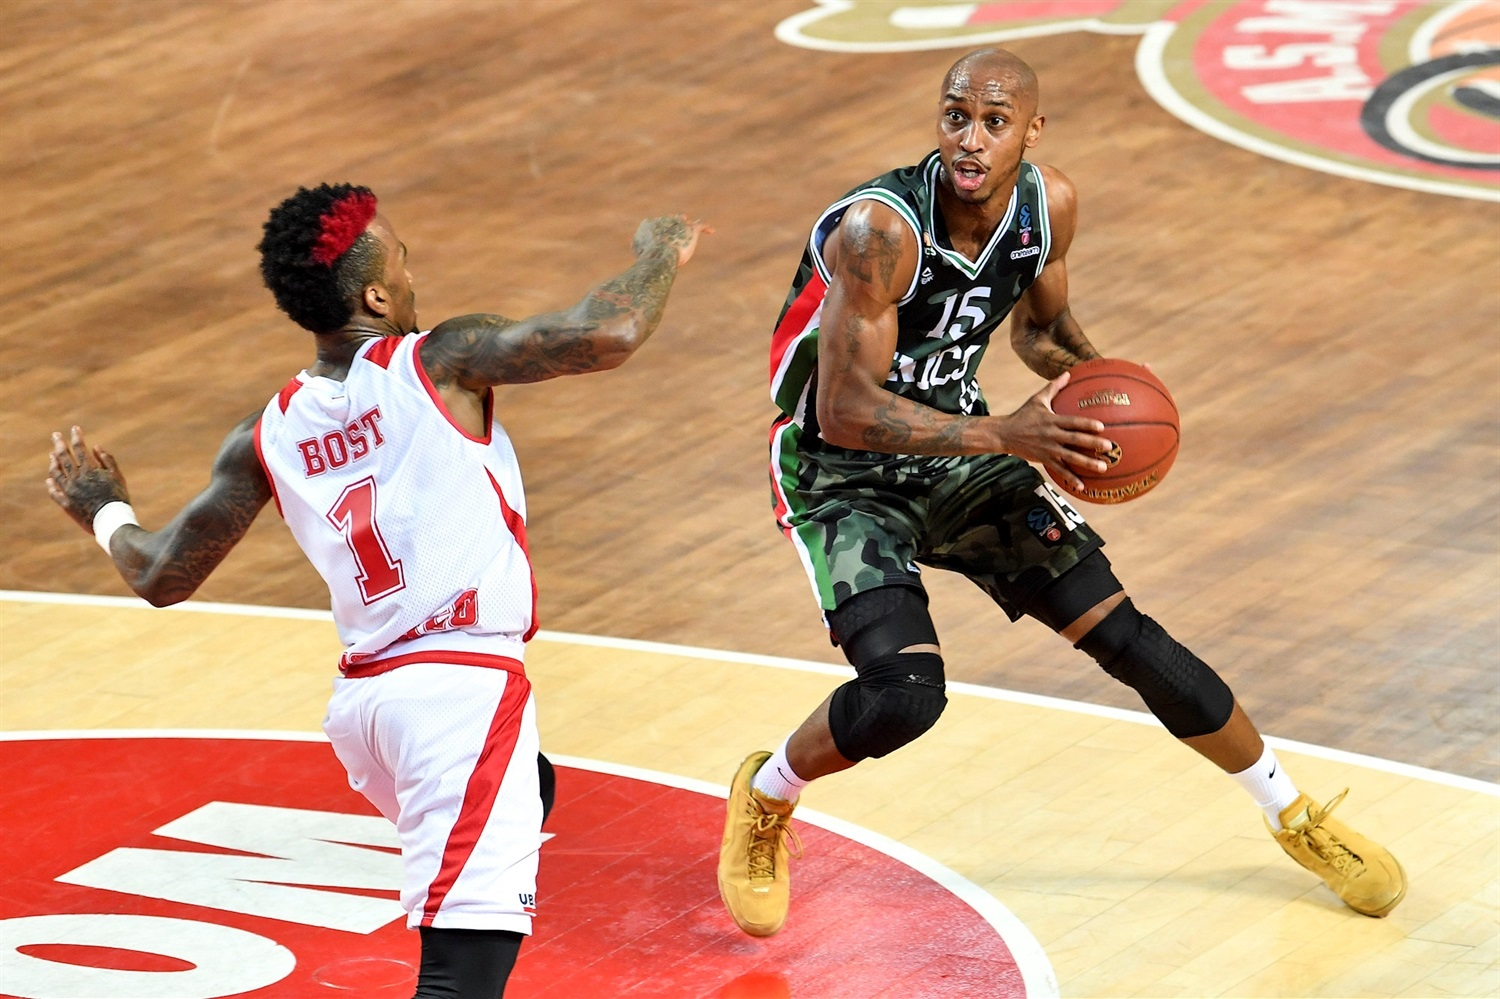 Jamar Smith - UNICS Kazan (photo Dircom - Monaco) - EC19